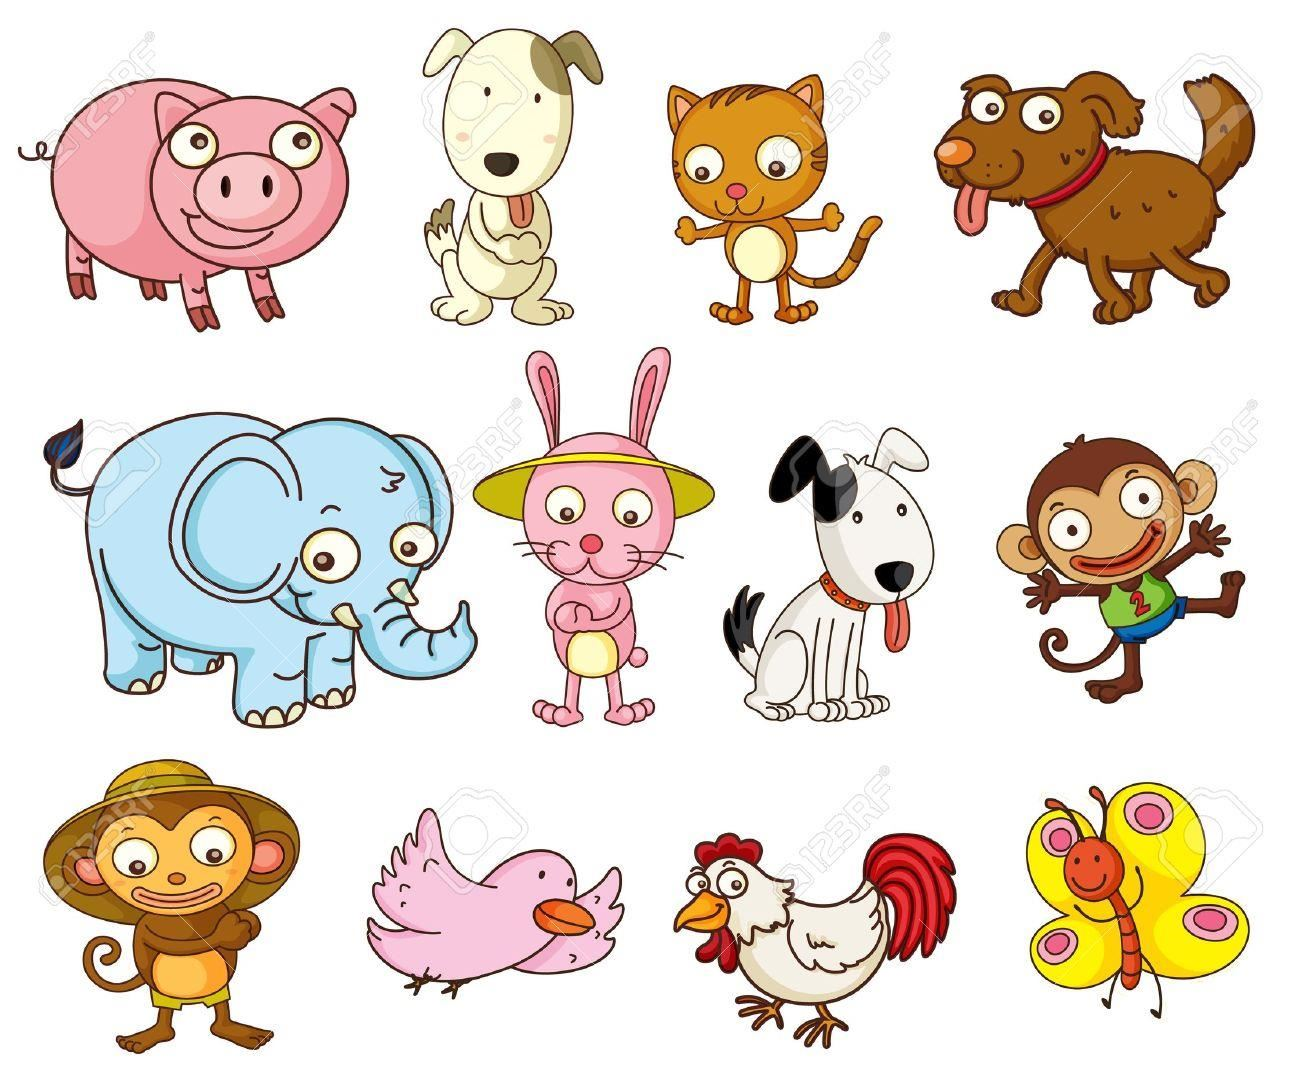 Animals clipart - Fotolip